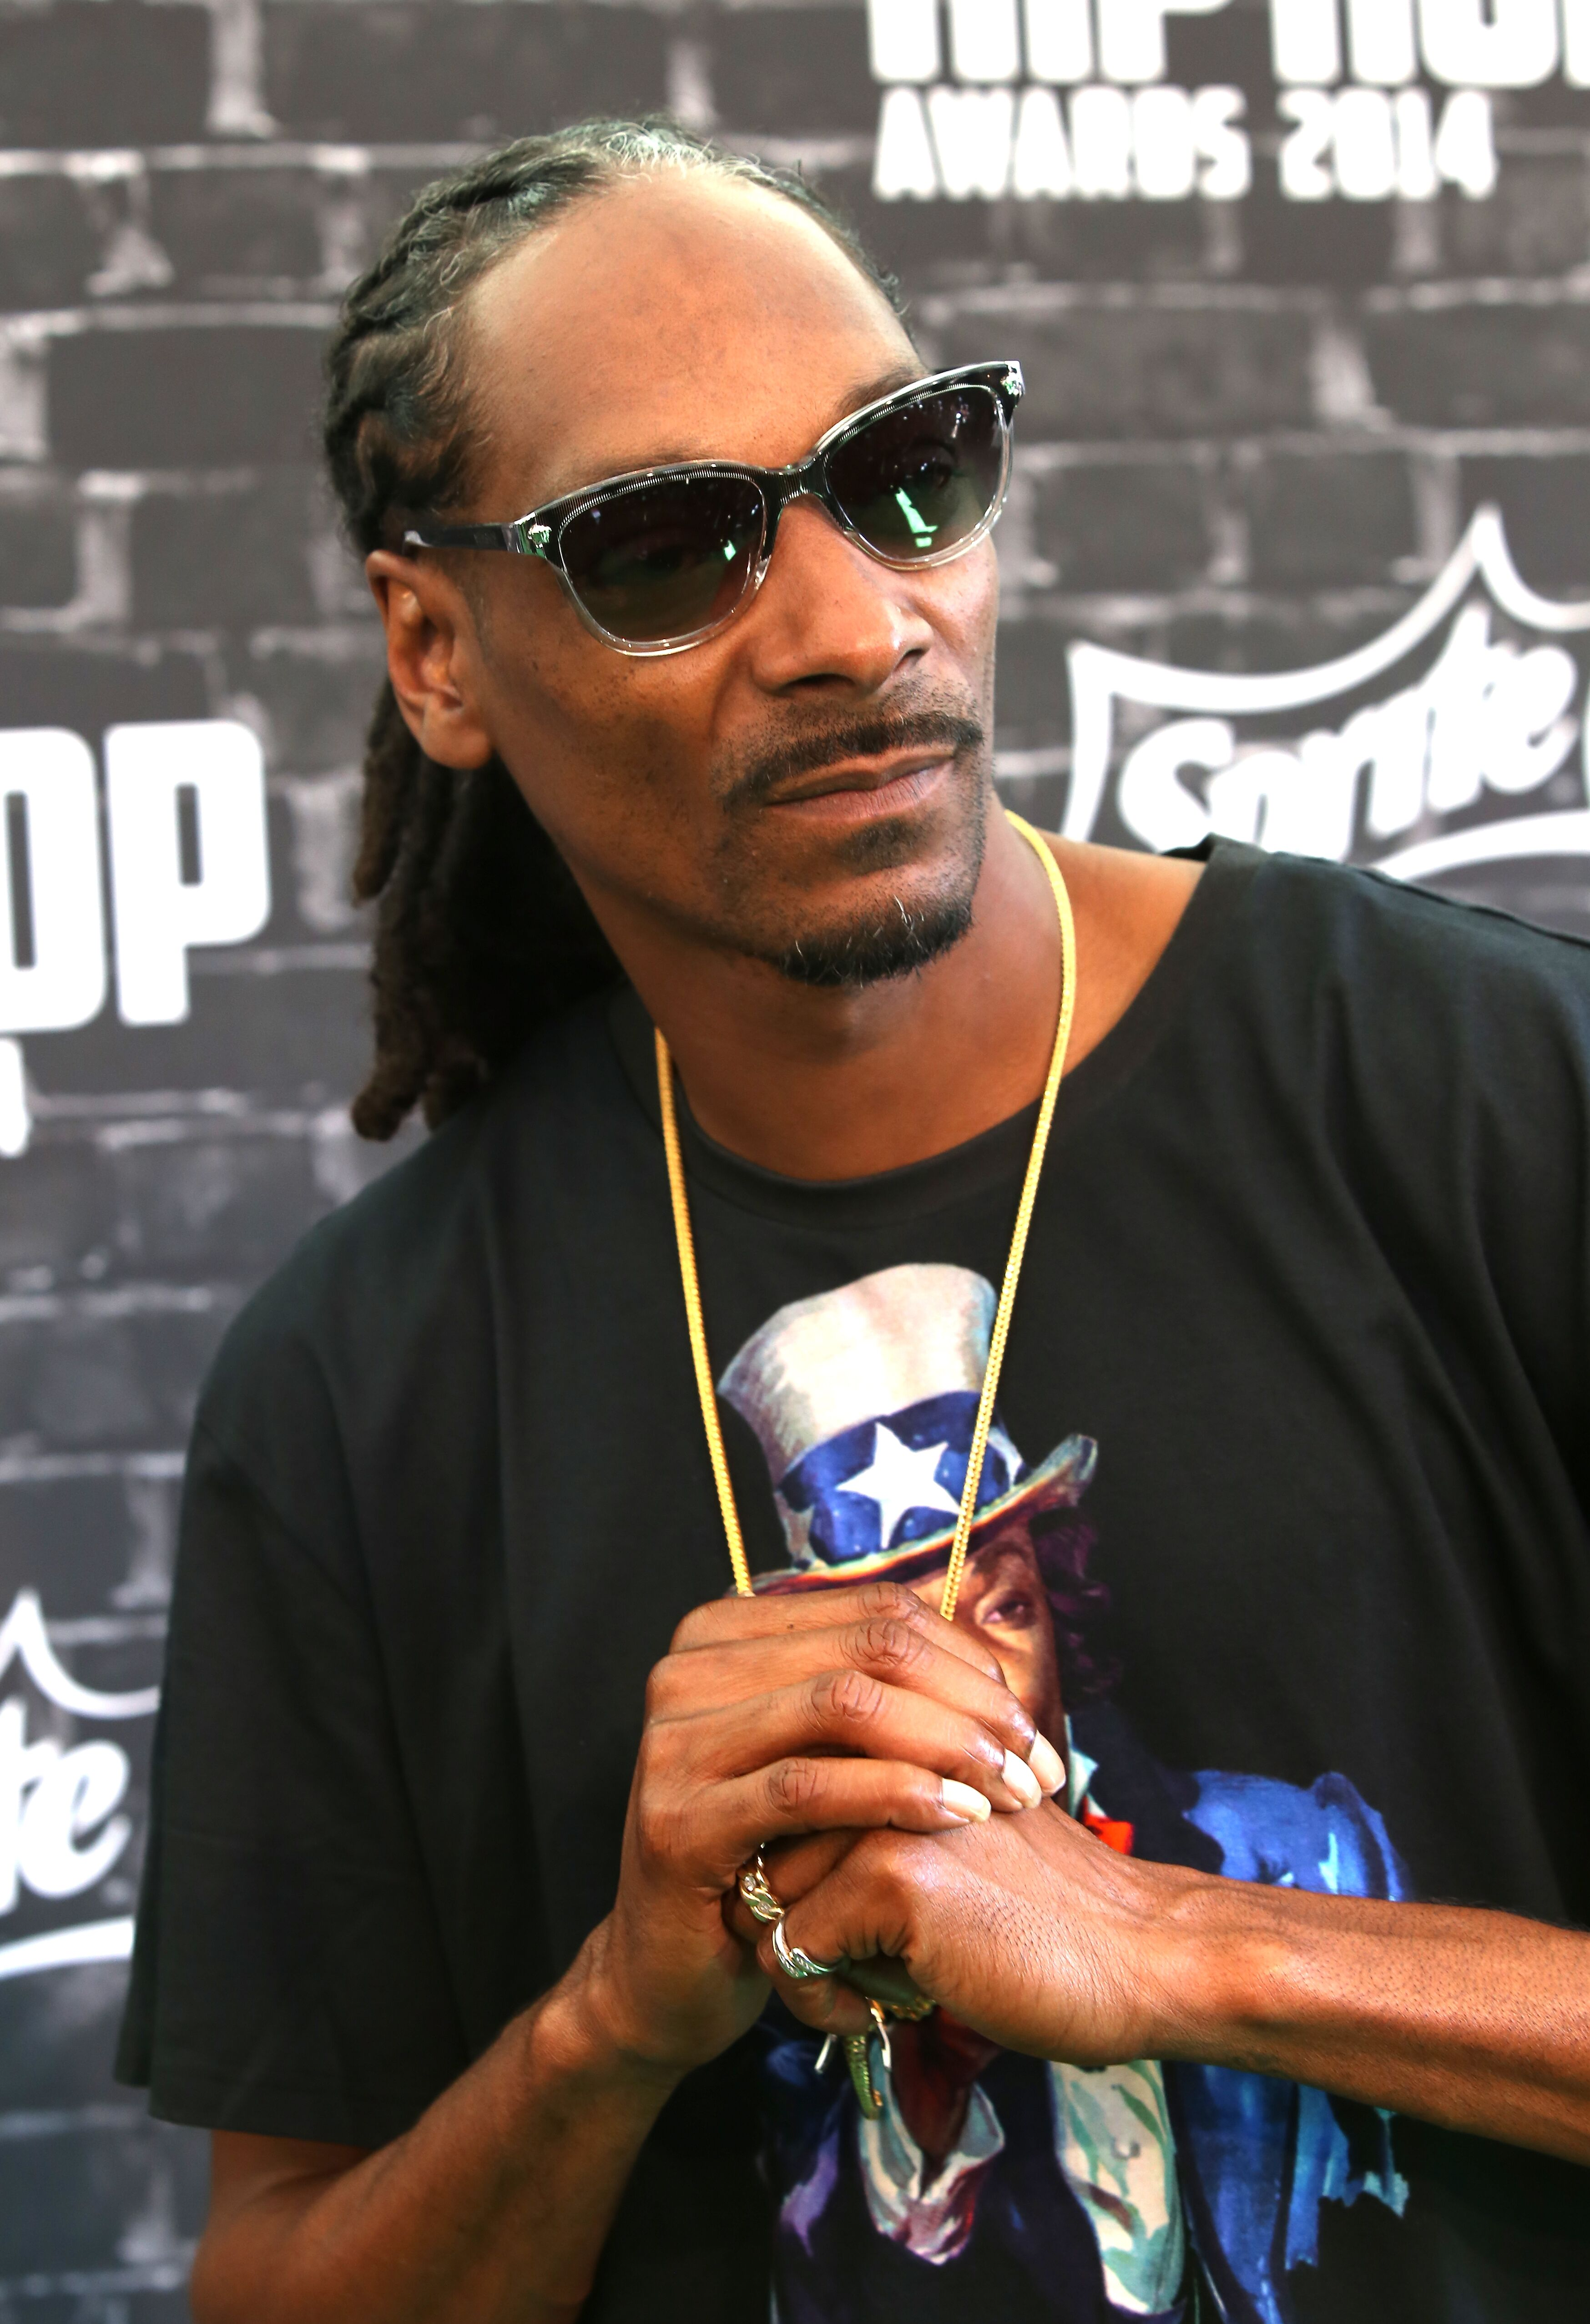 Rapper Uncle Snoop attends the BET Hip Hop Awards 2014 presented by Sprite at Boisfeuillet Jones Atlanta Civic Center on September 20, 2014 | Photo: Getty Images